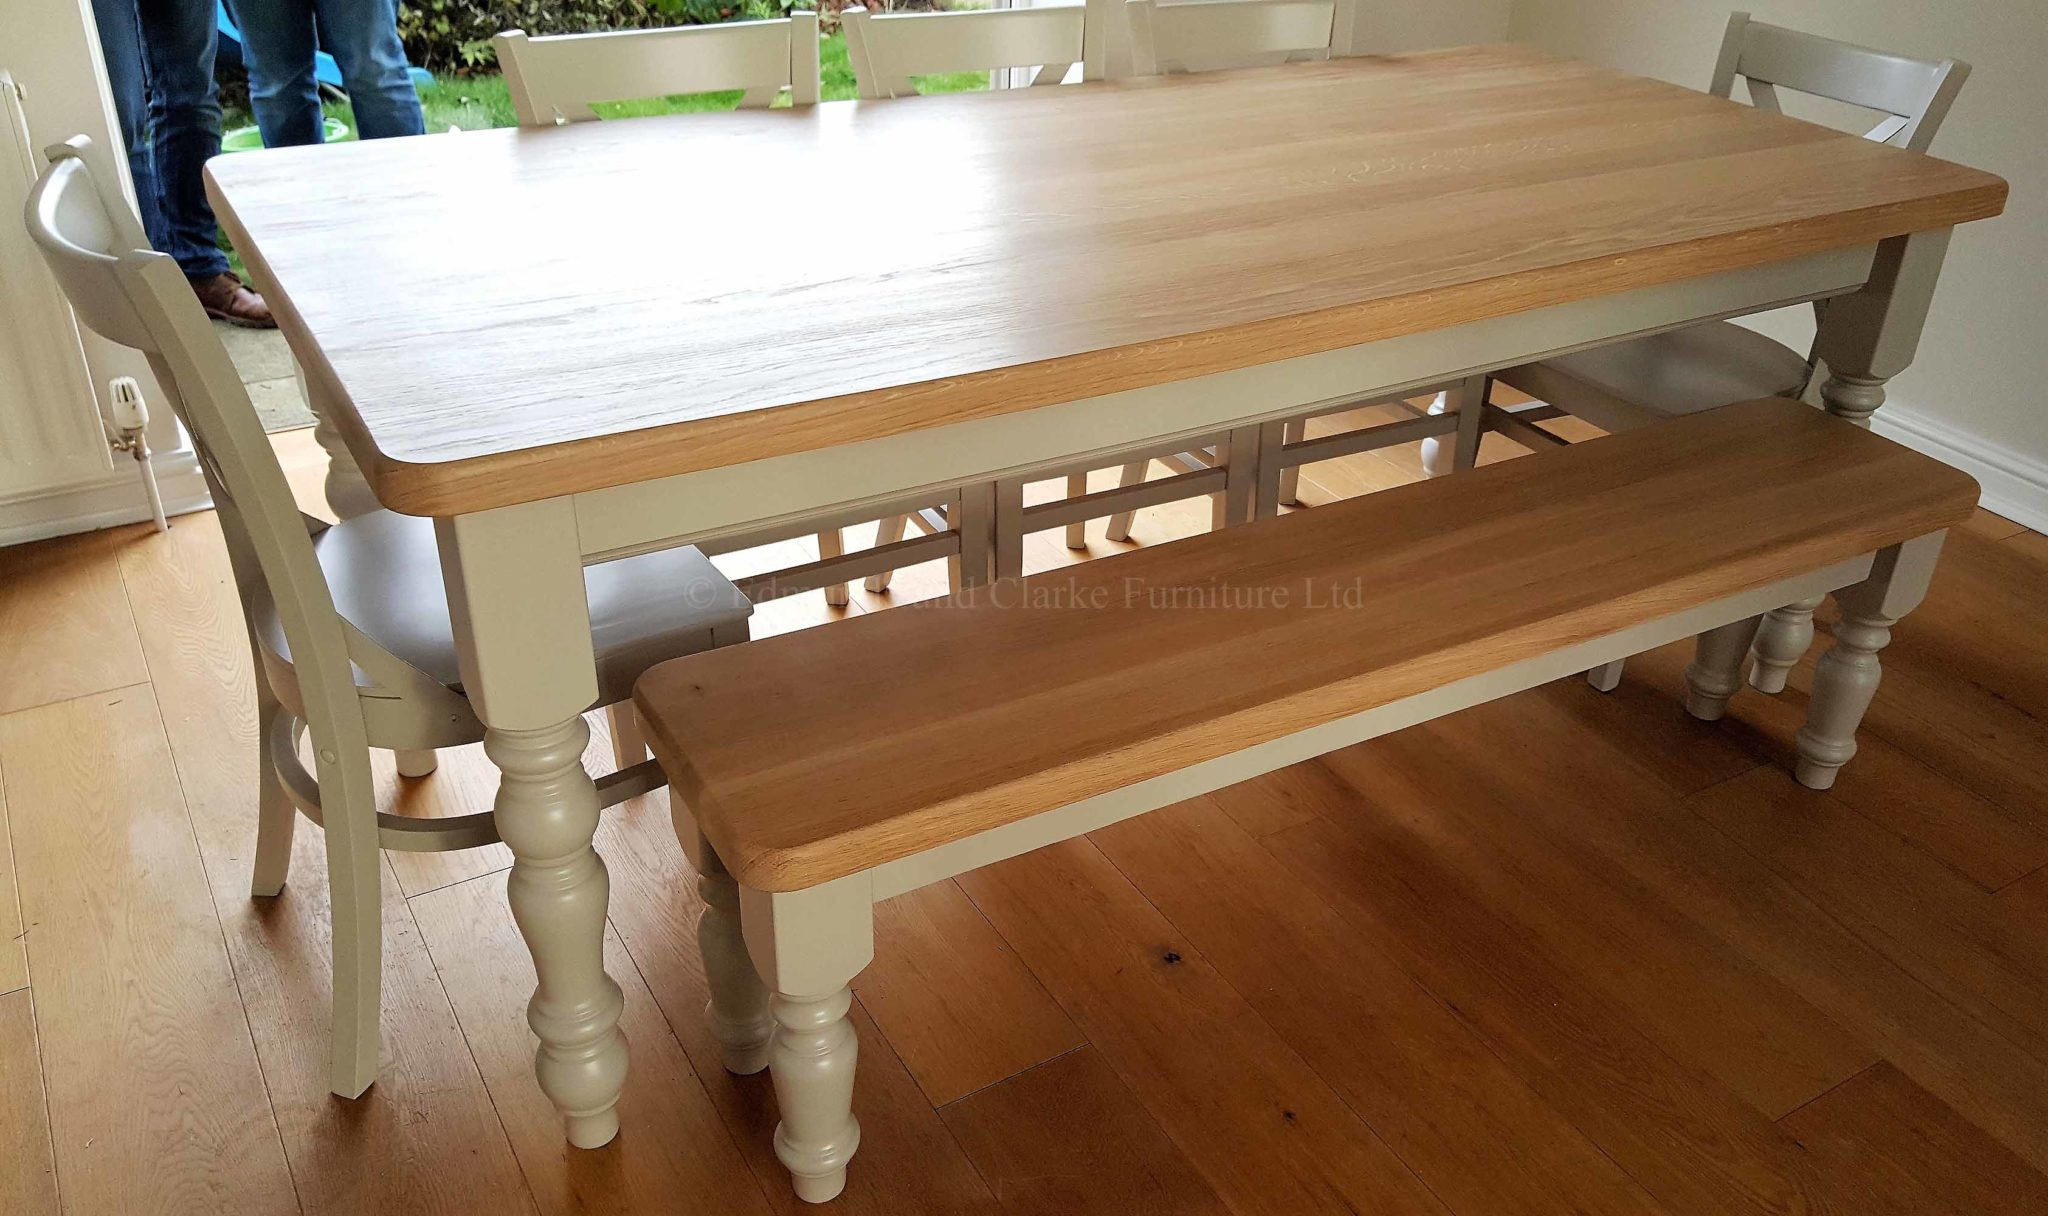 Edmunds farmhouse table with crossback chairs and bench